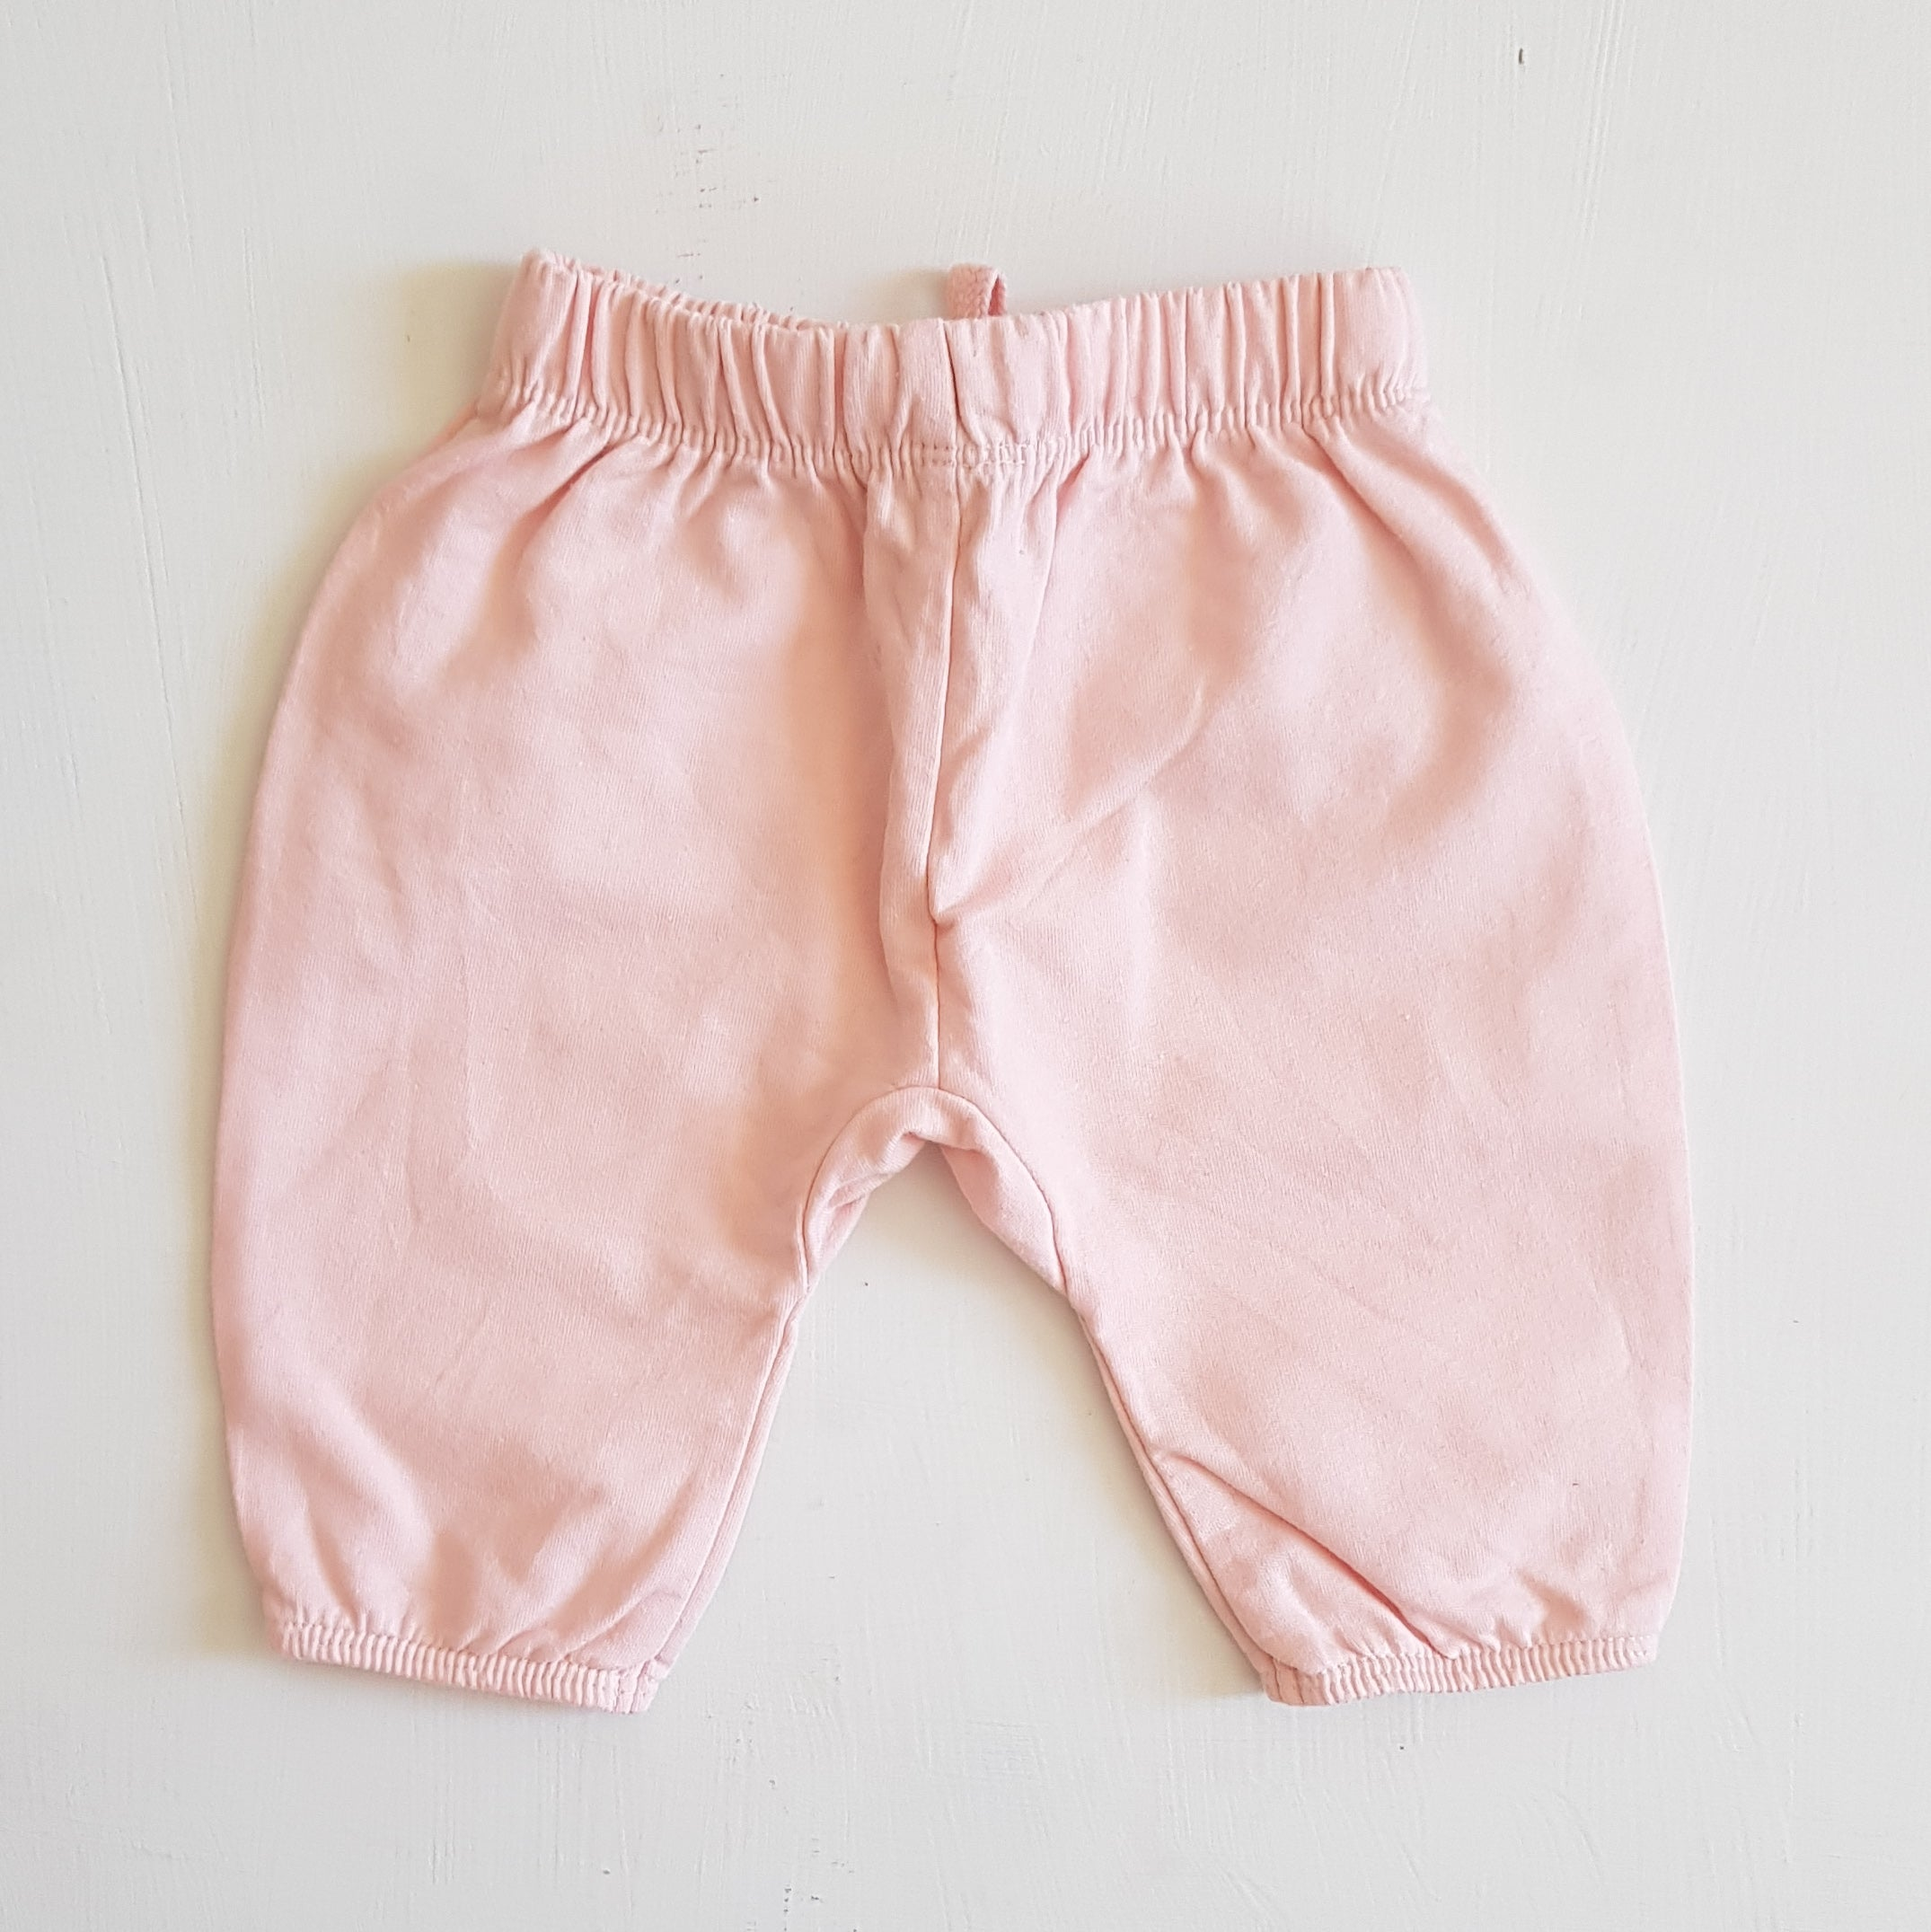 THRIFT Wilson & Frenchy - Pink Slouch Pants Size 0000